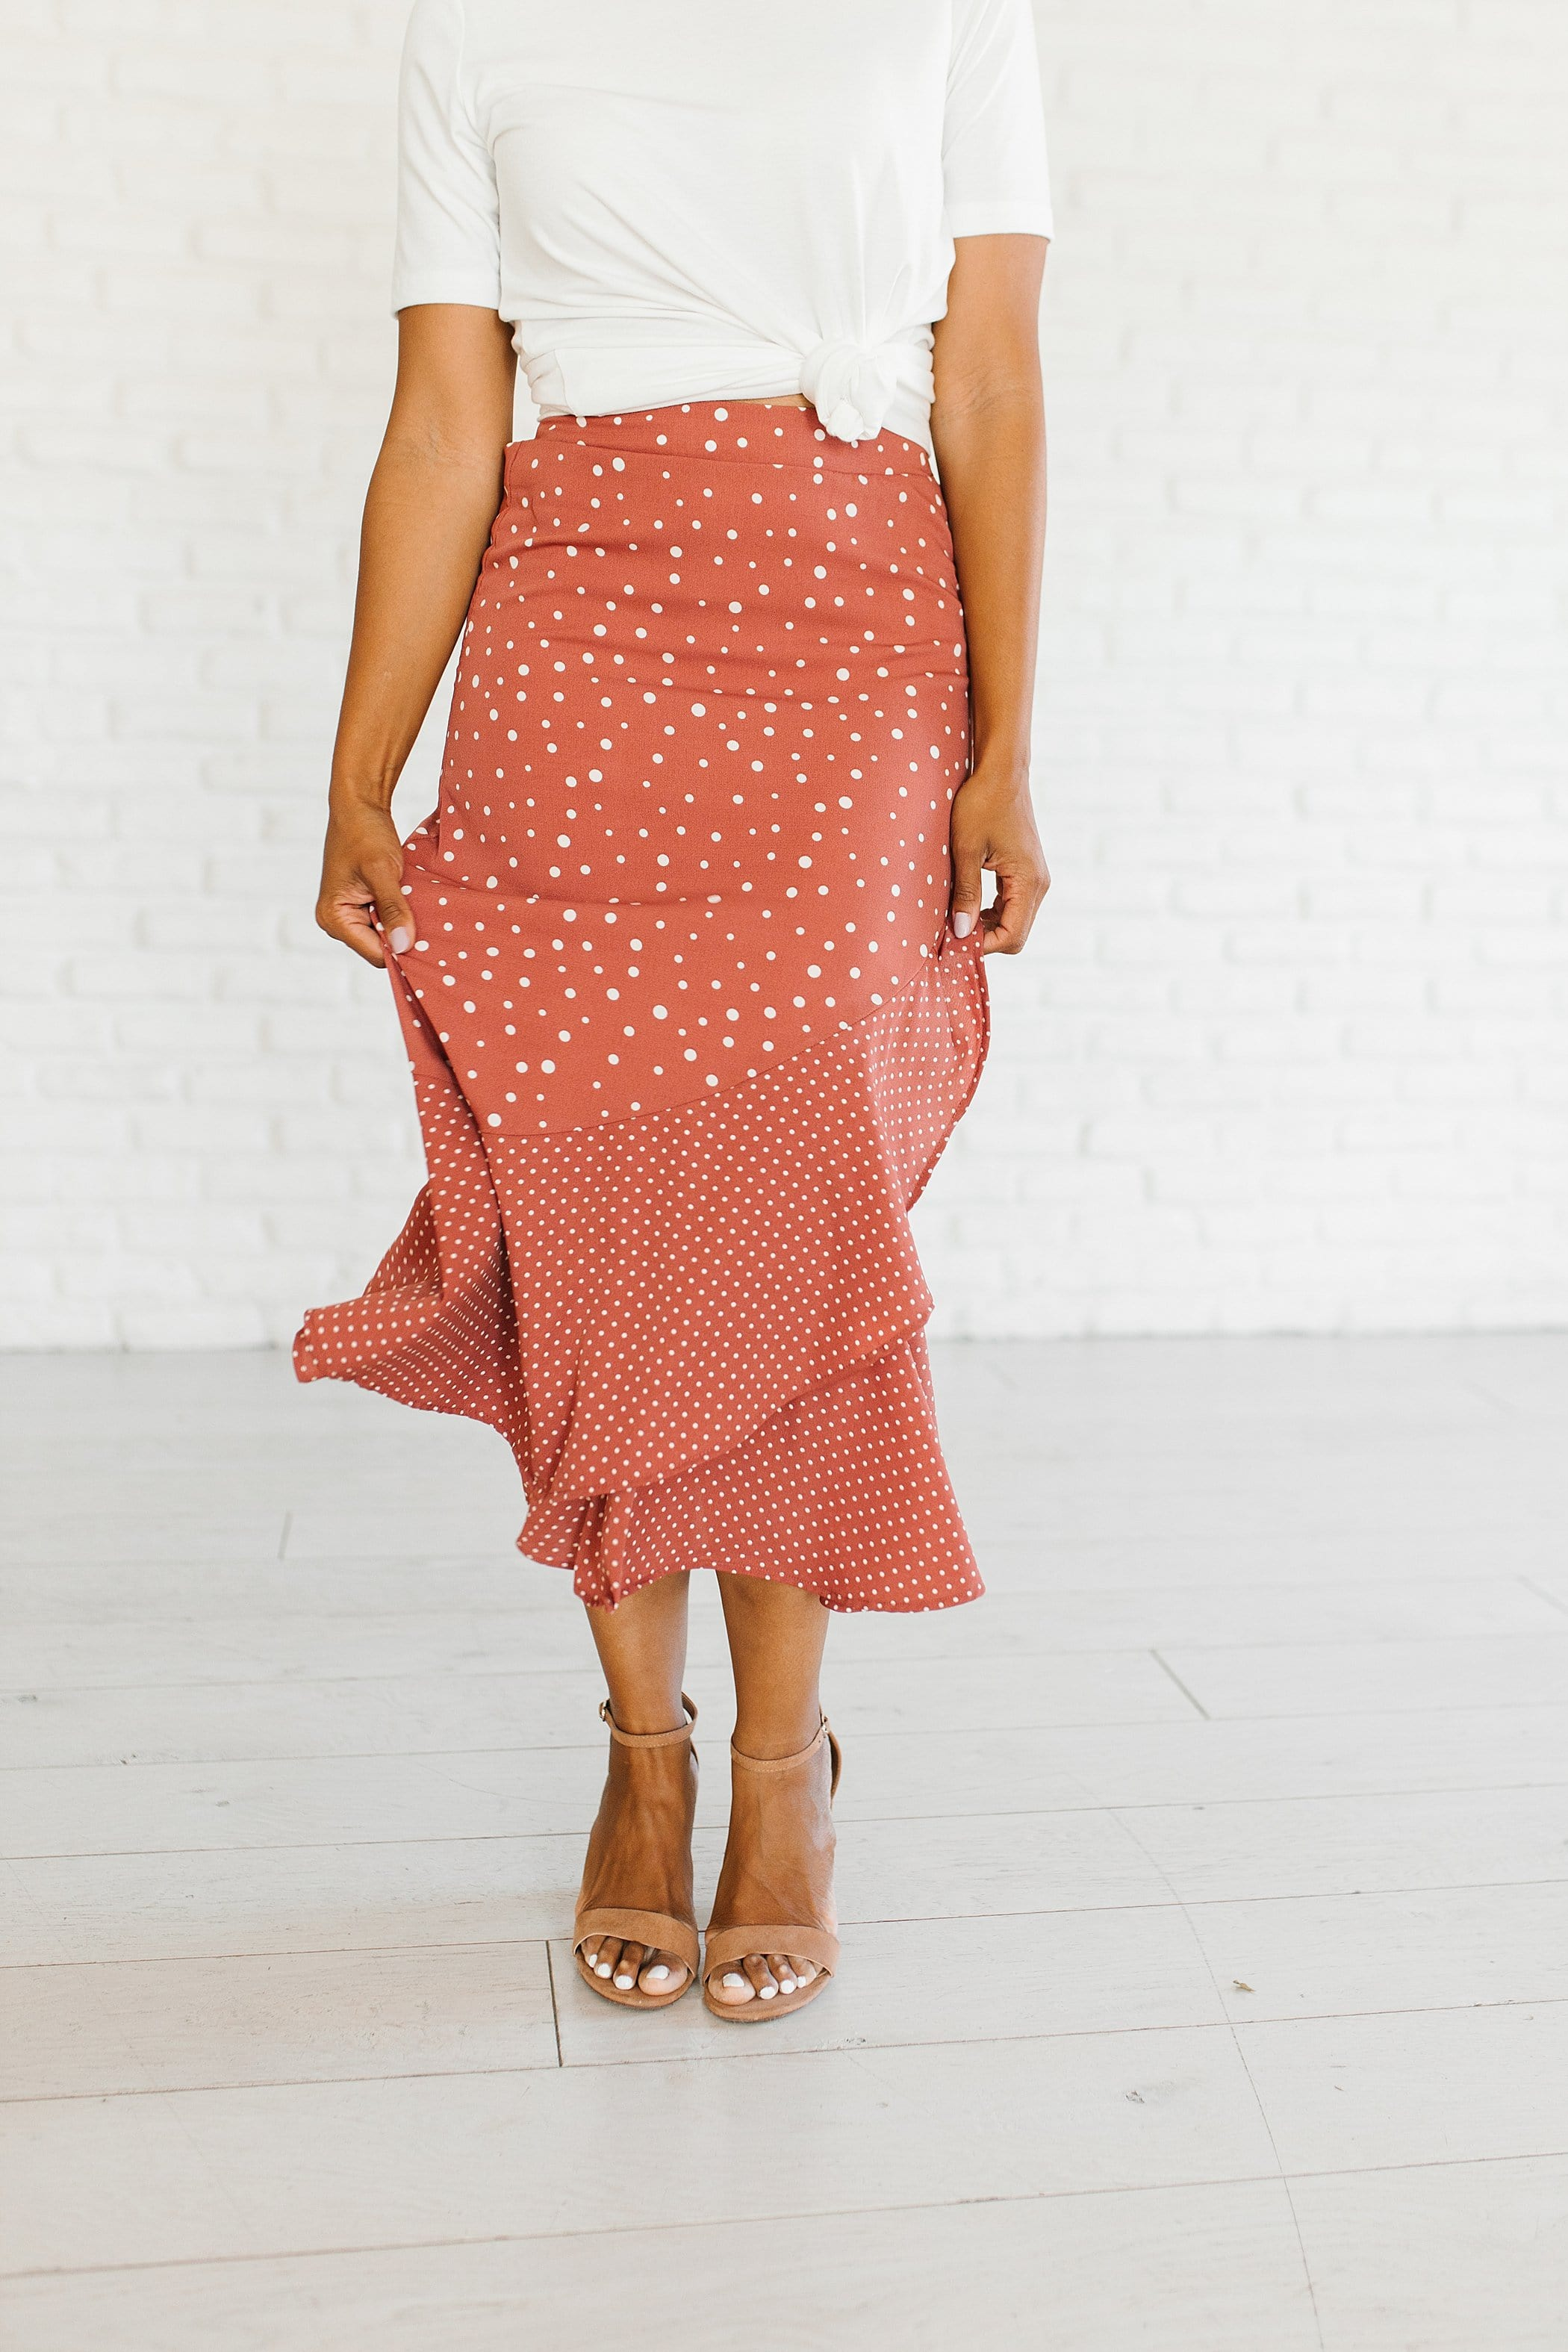 The Catalina Ruffle Dot Skirt in Cream and Mauve